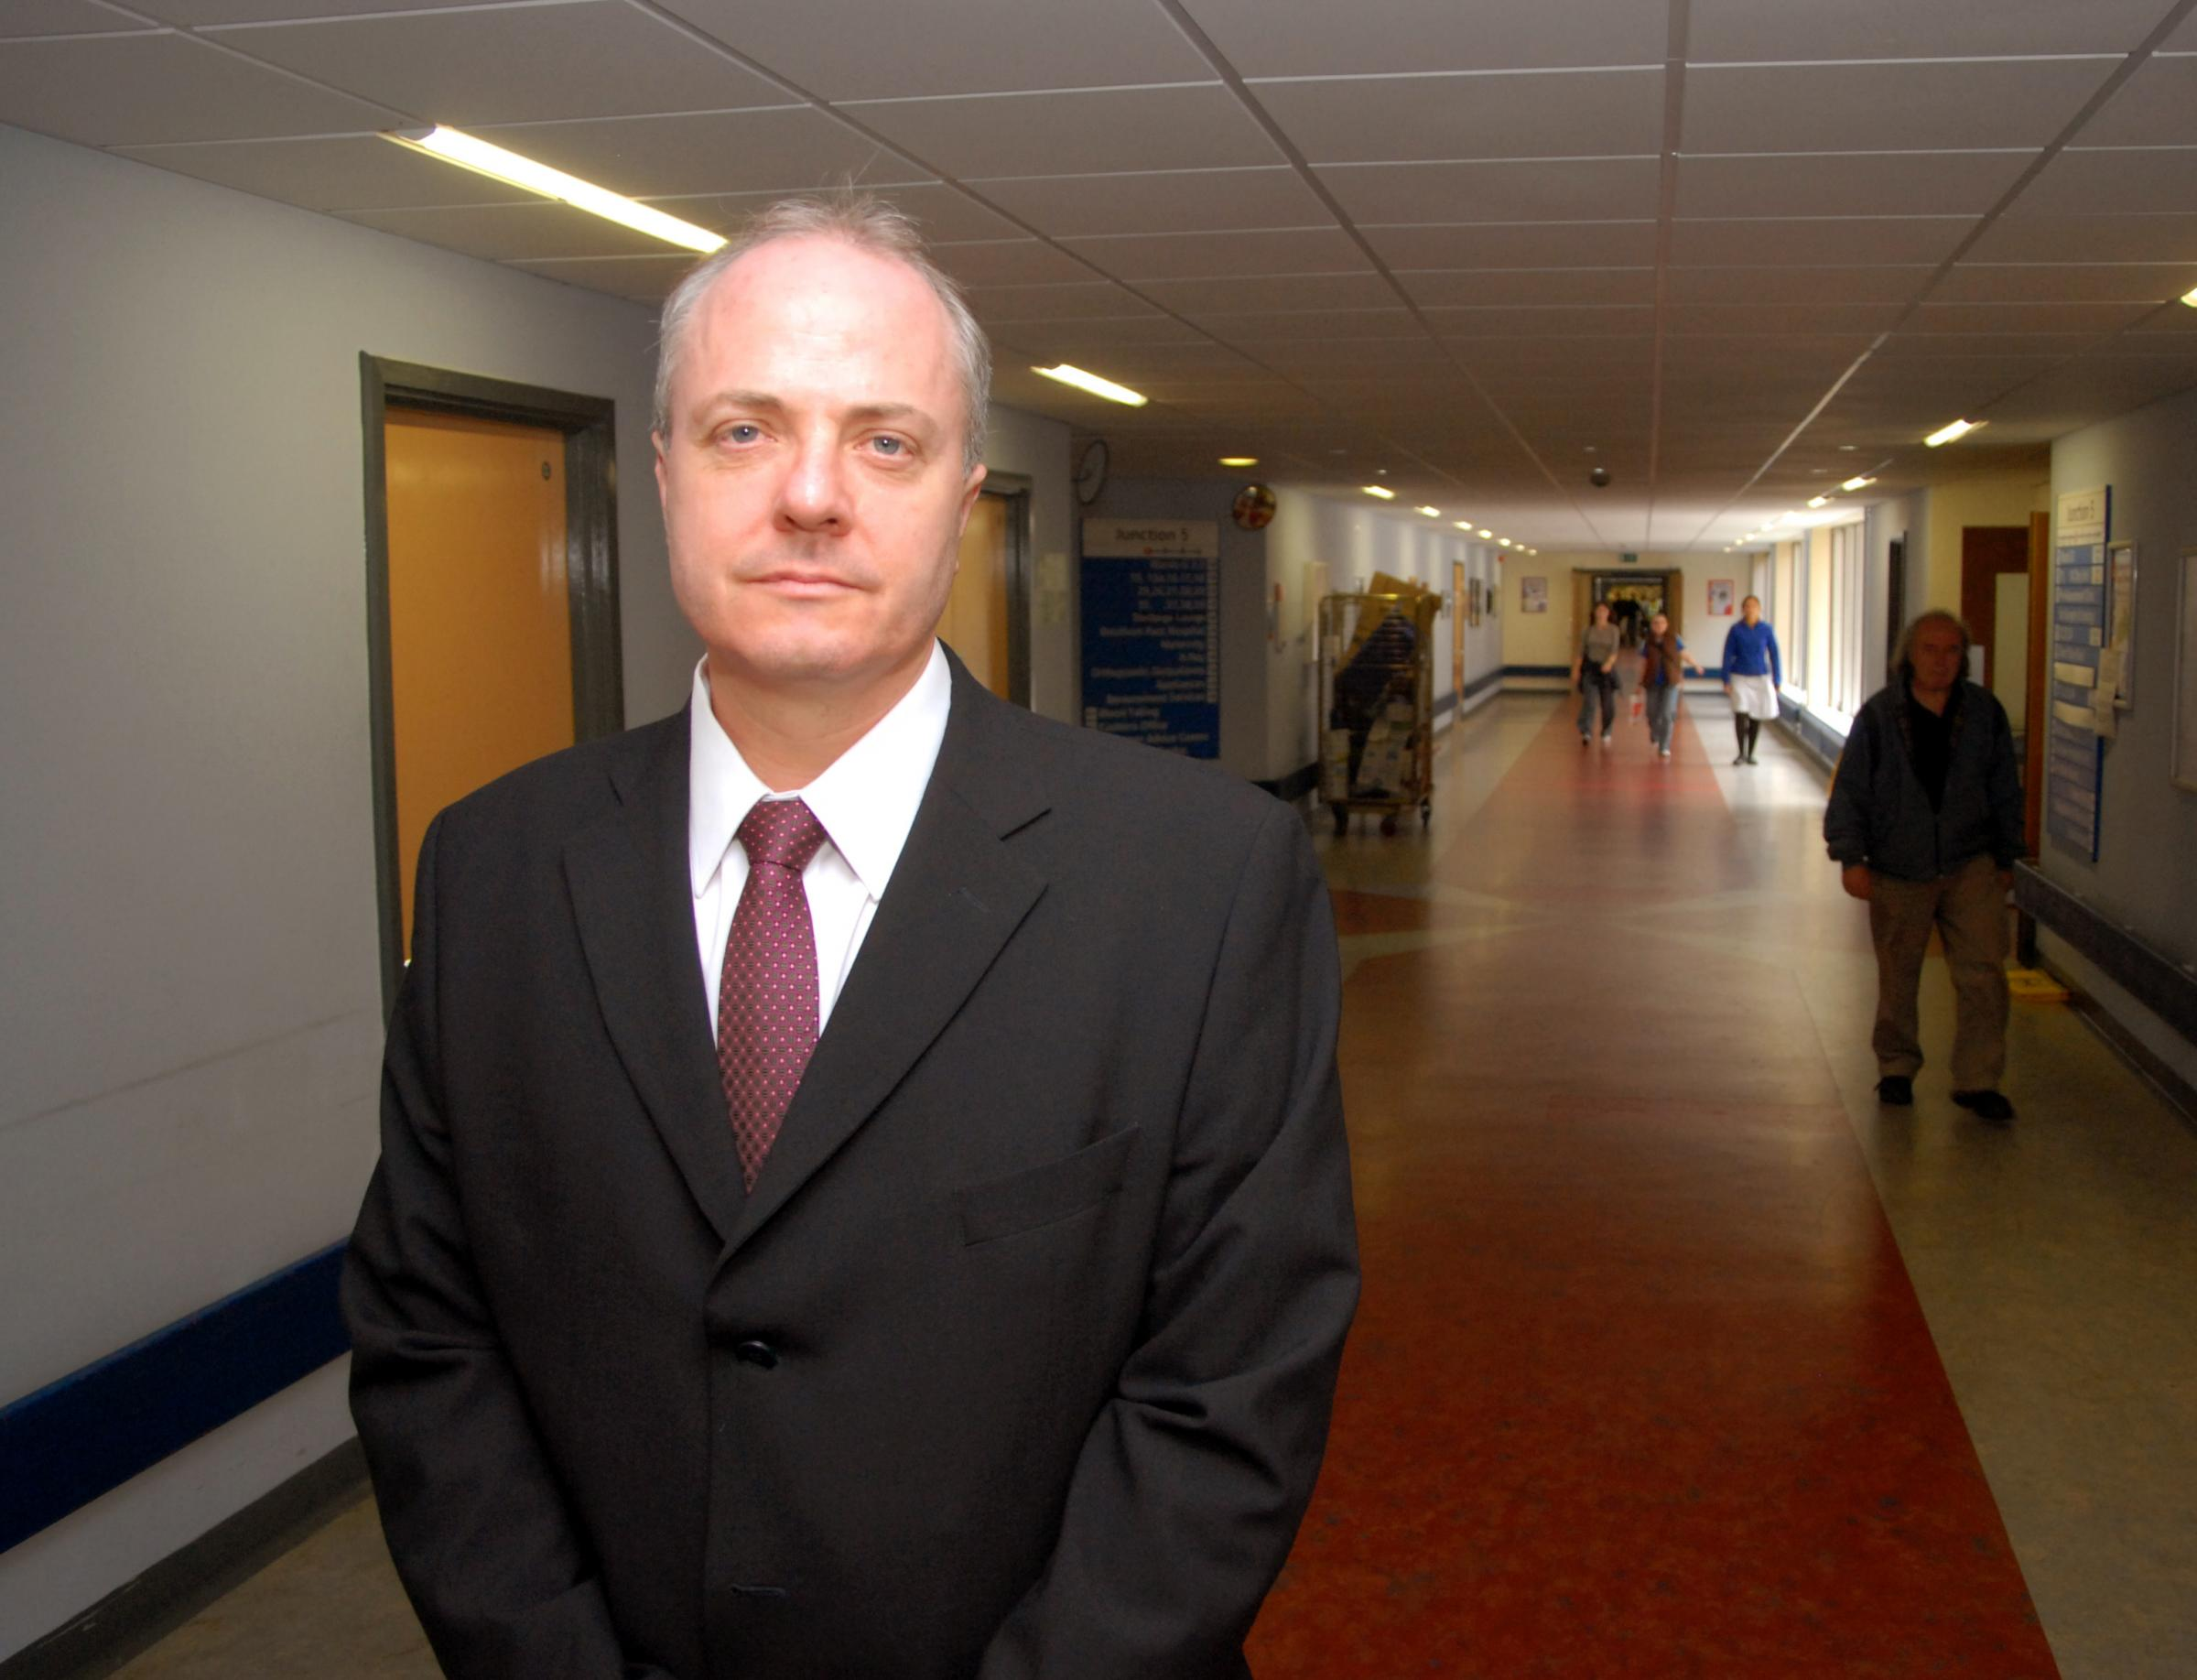 REPLACEMENT SOUGHT: Patrick Crowley, former chief executive of York Teaching Hospital NHS Foundation Trust